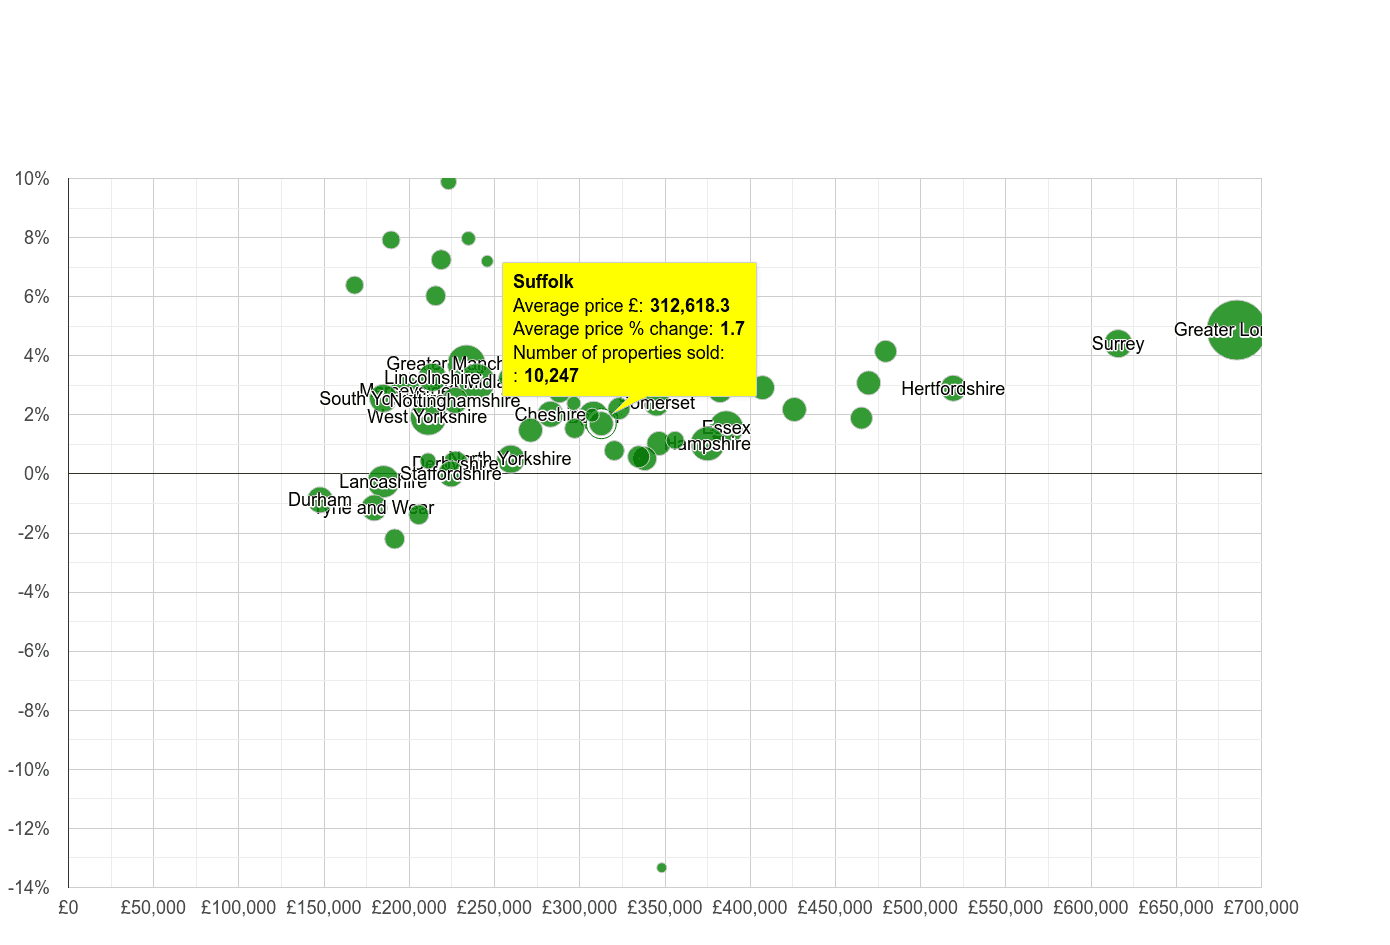 Suffolk house prices compared to other counties